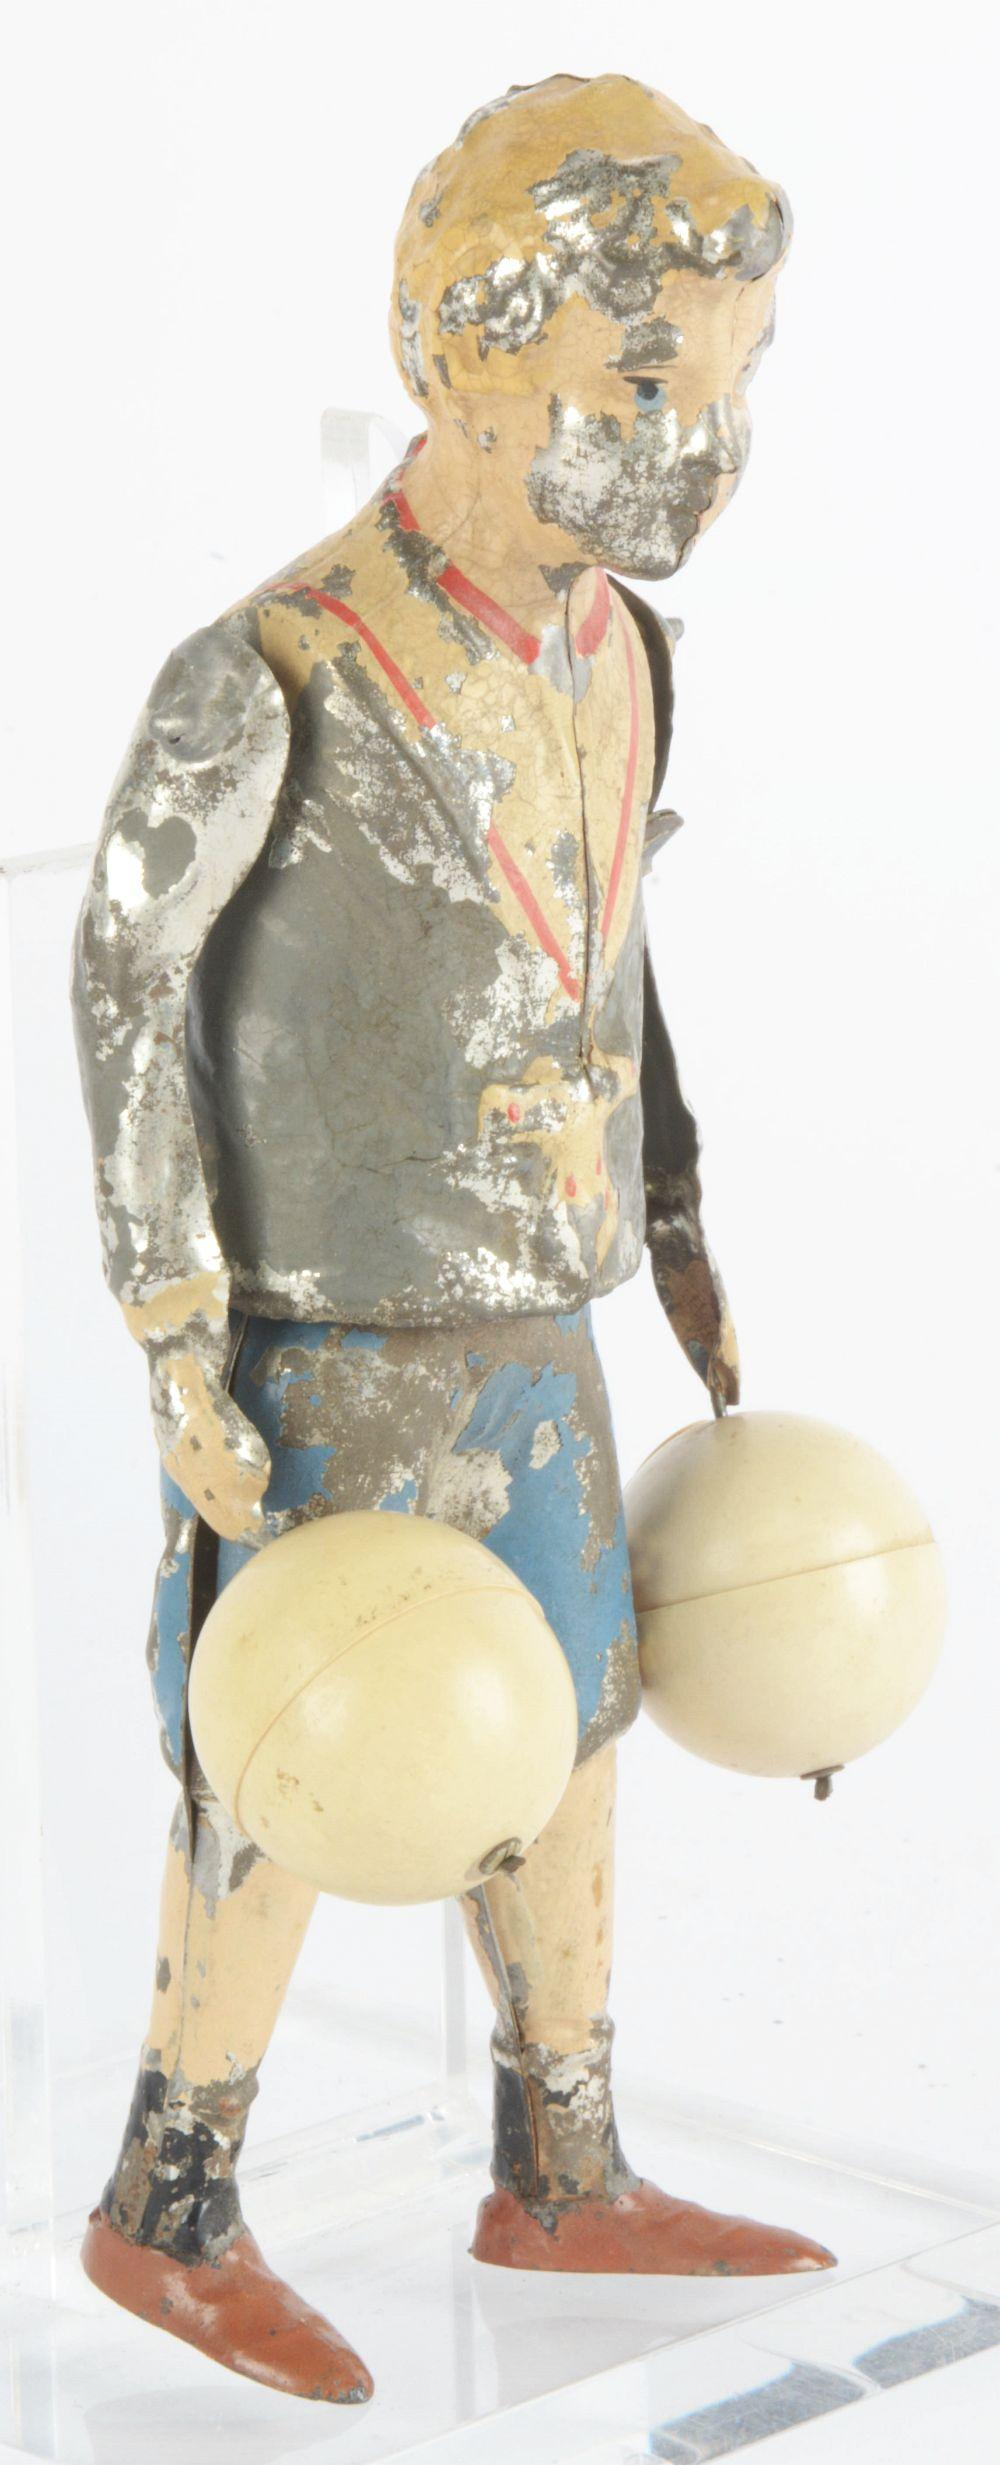 Lot 2132: German Hand-Painted Wind-Up Balloon Boy.